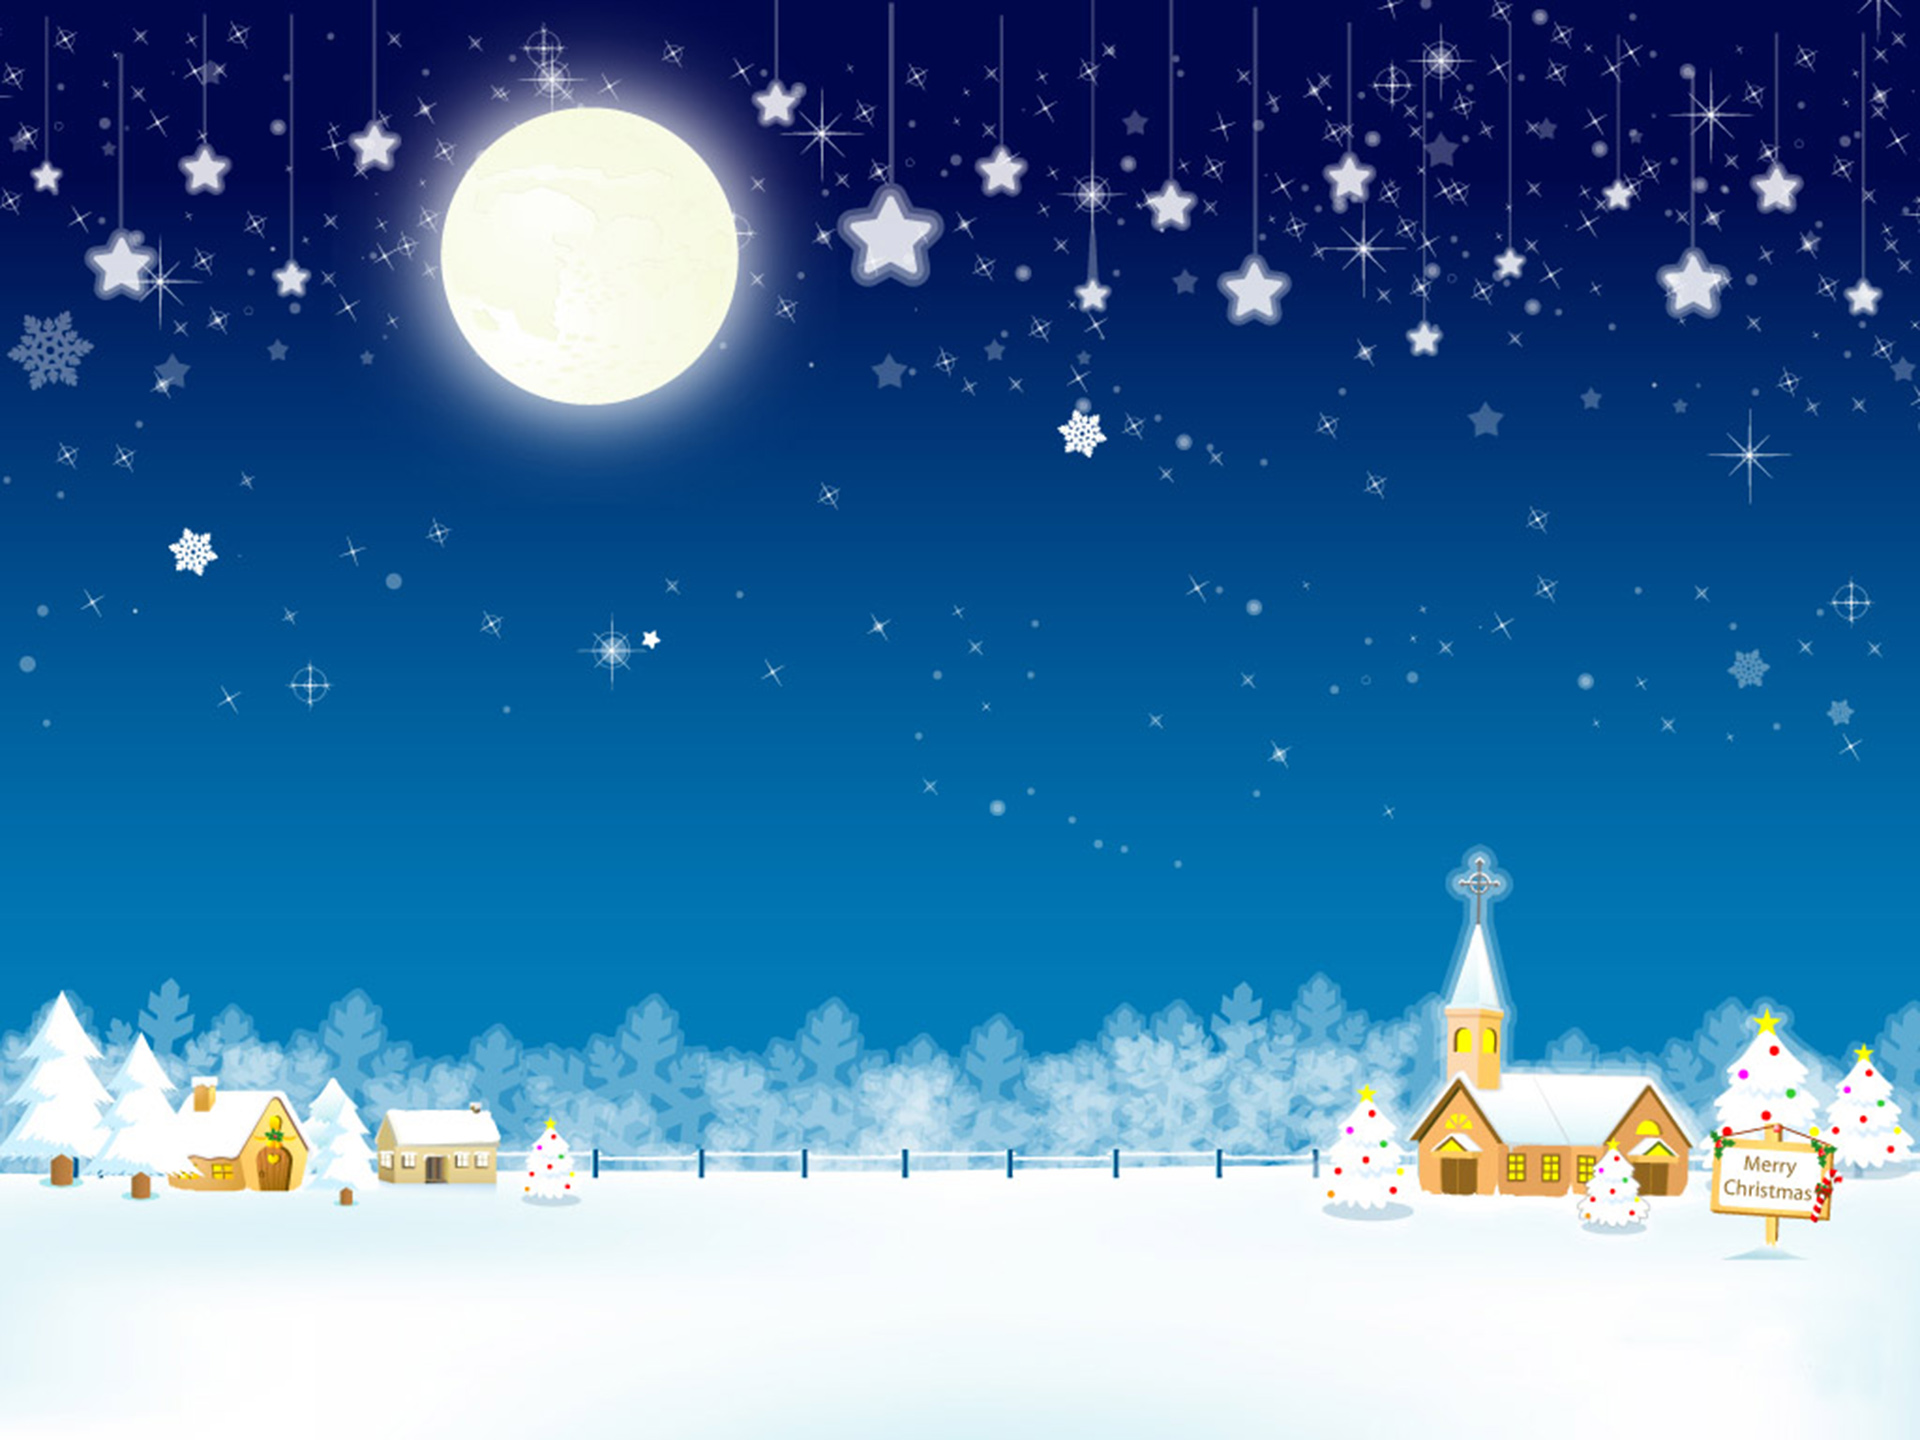 Merry Christmas Backgrounds   Merry Christmas Background Hd 1920x1440